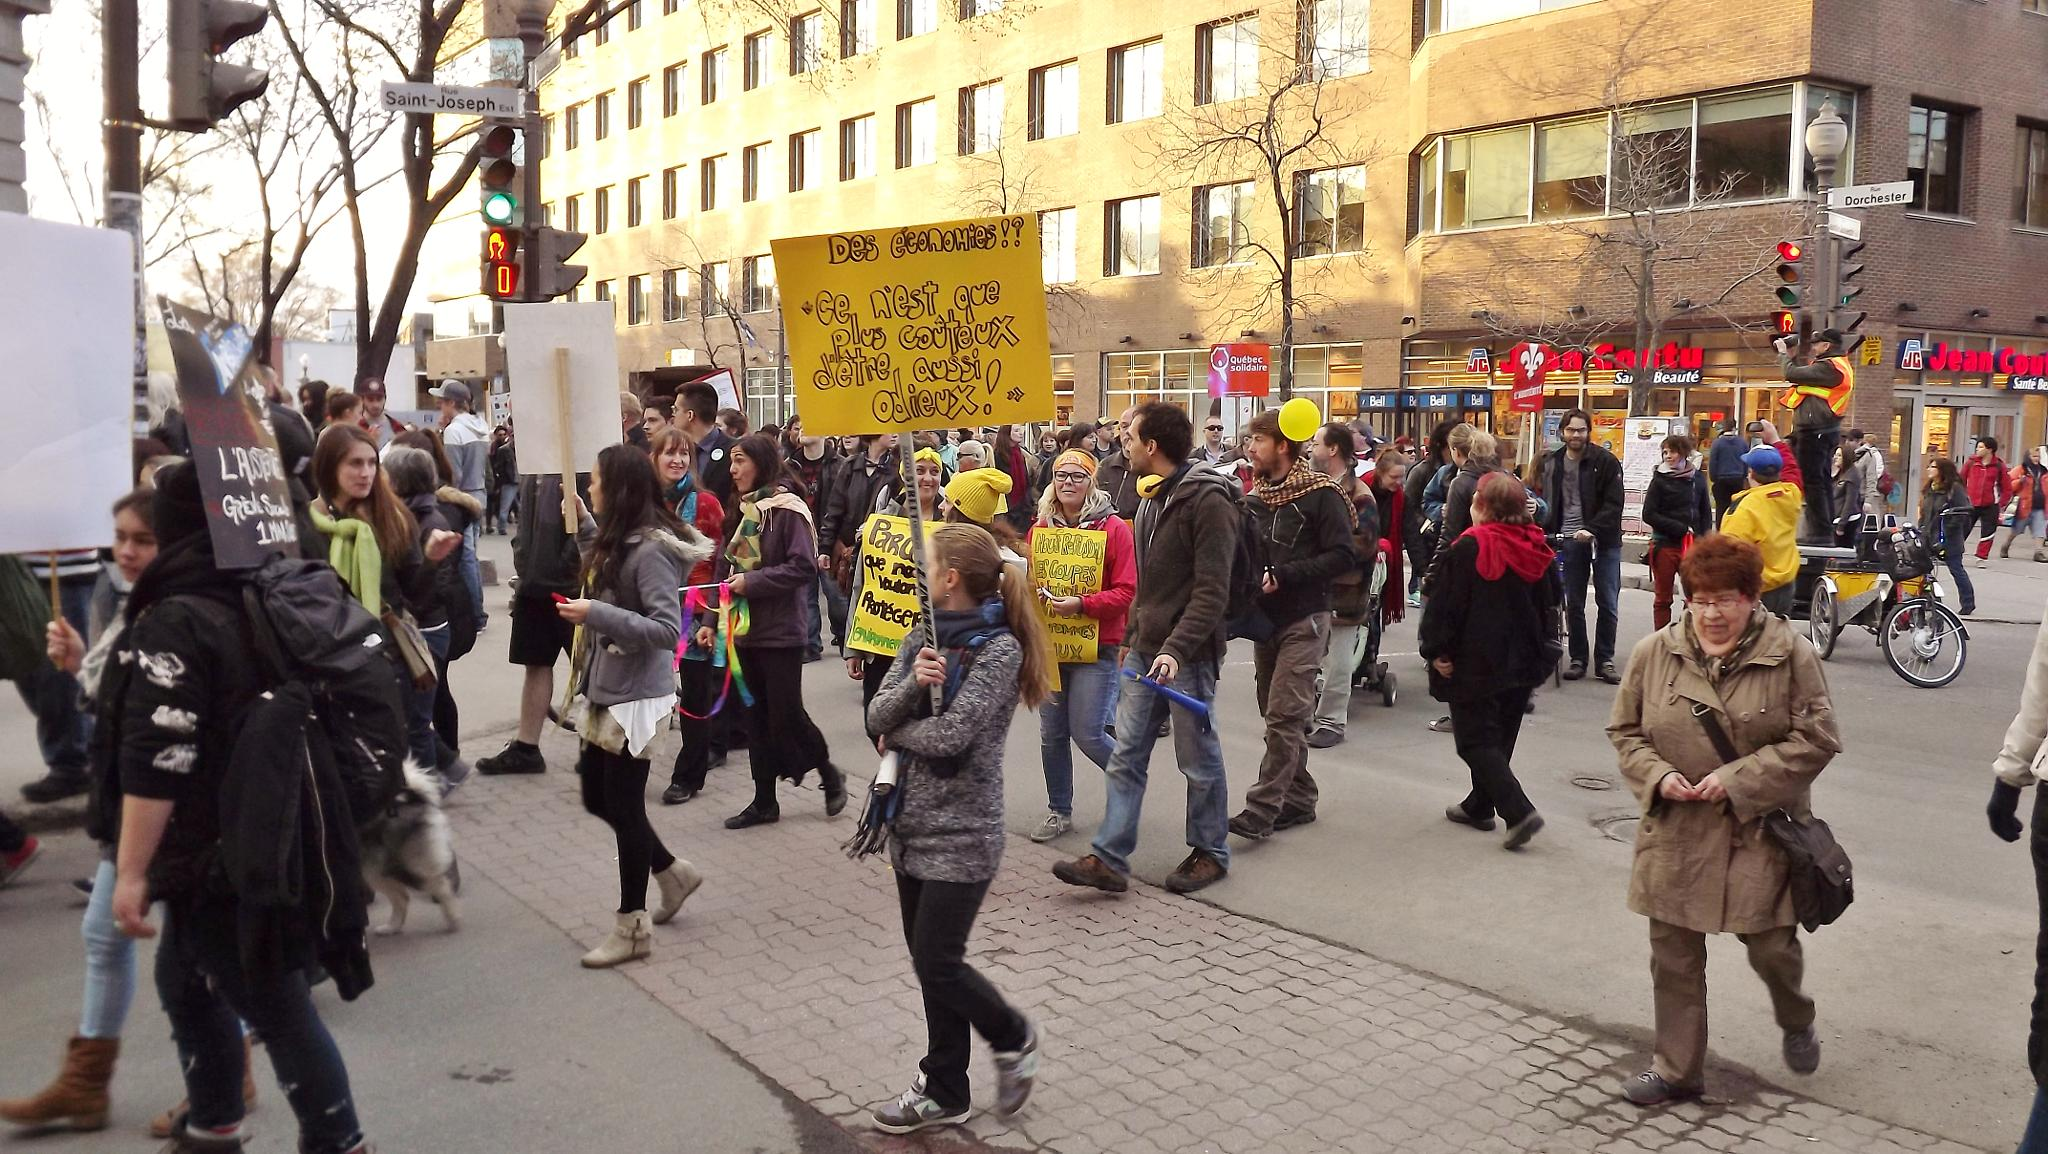 Walkers against auterity & social justice by real.michaud.5036